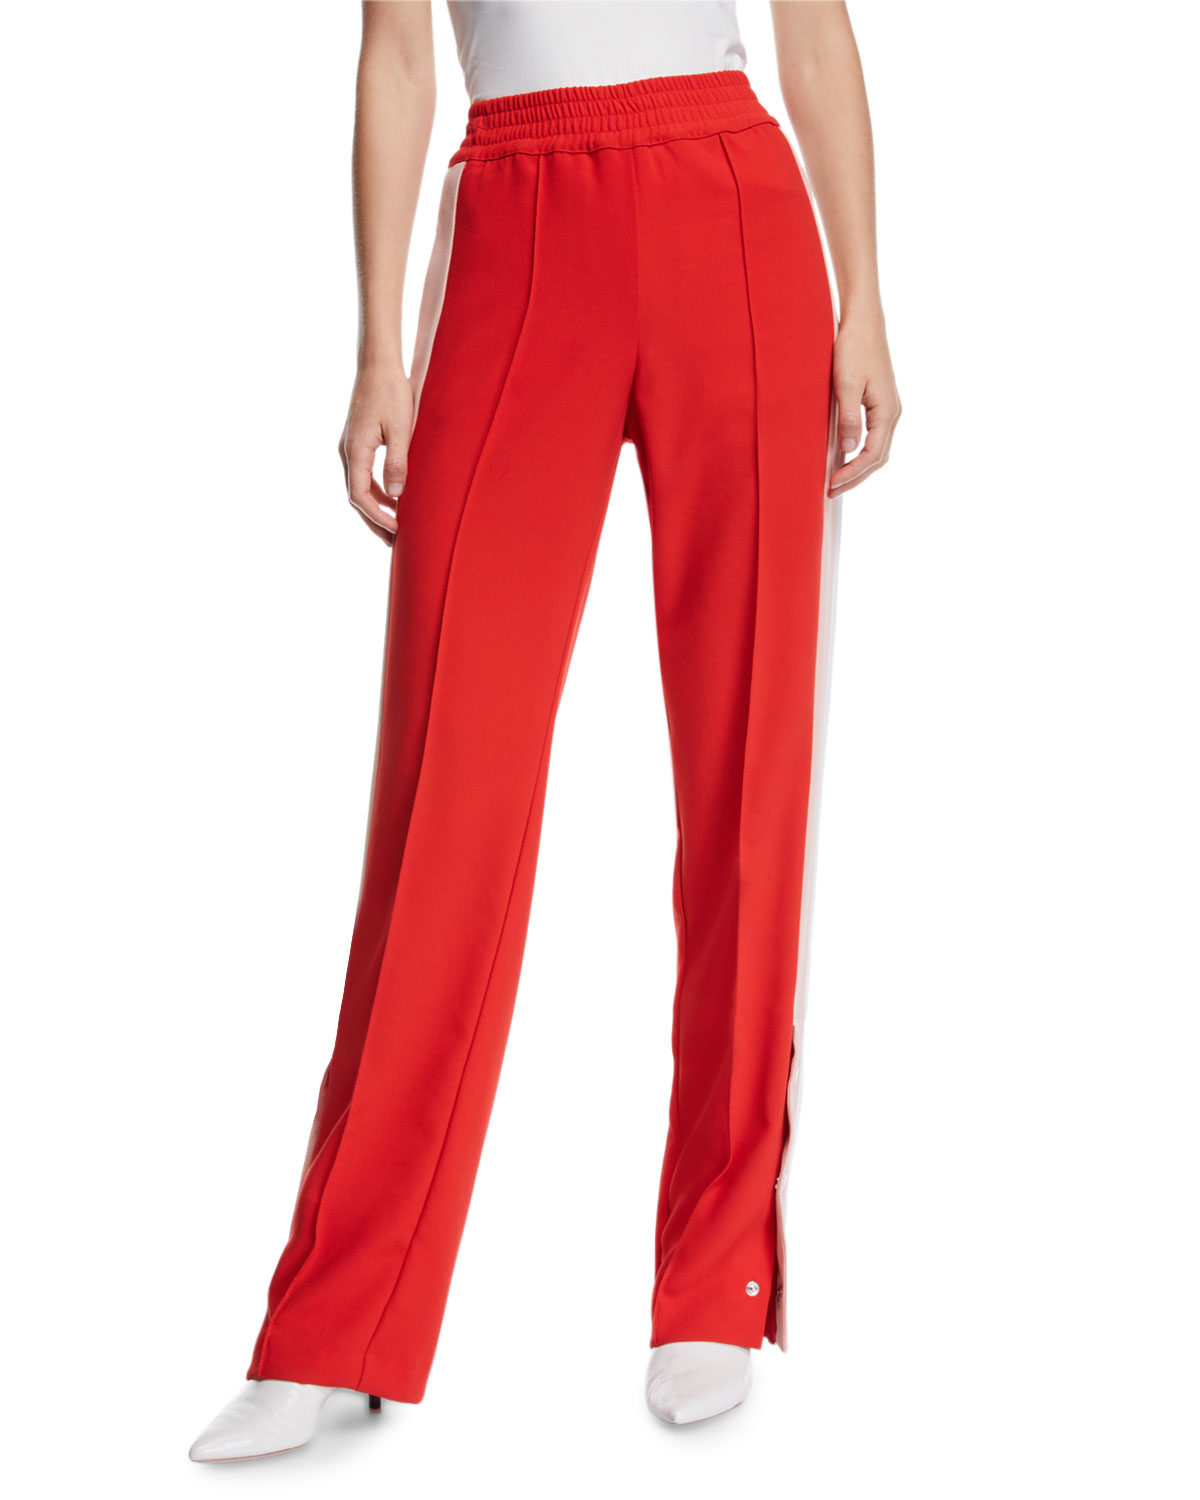 PINKO Snap-Up Racer Stripe Track Pants in Red